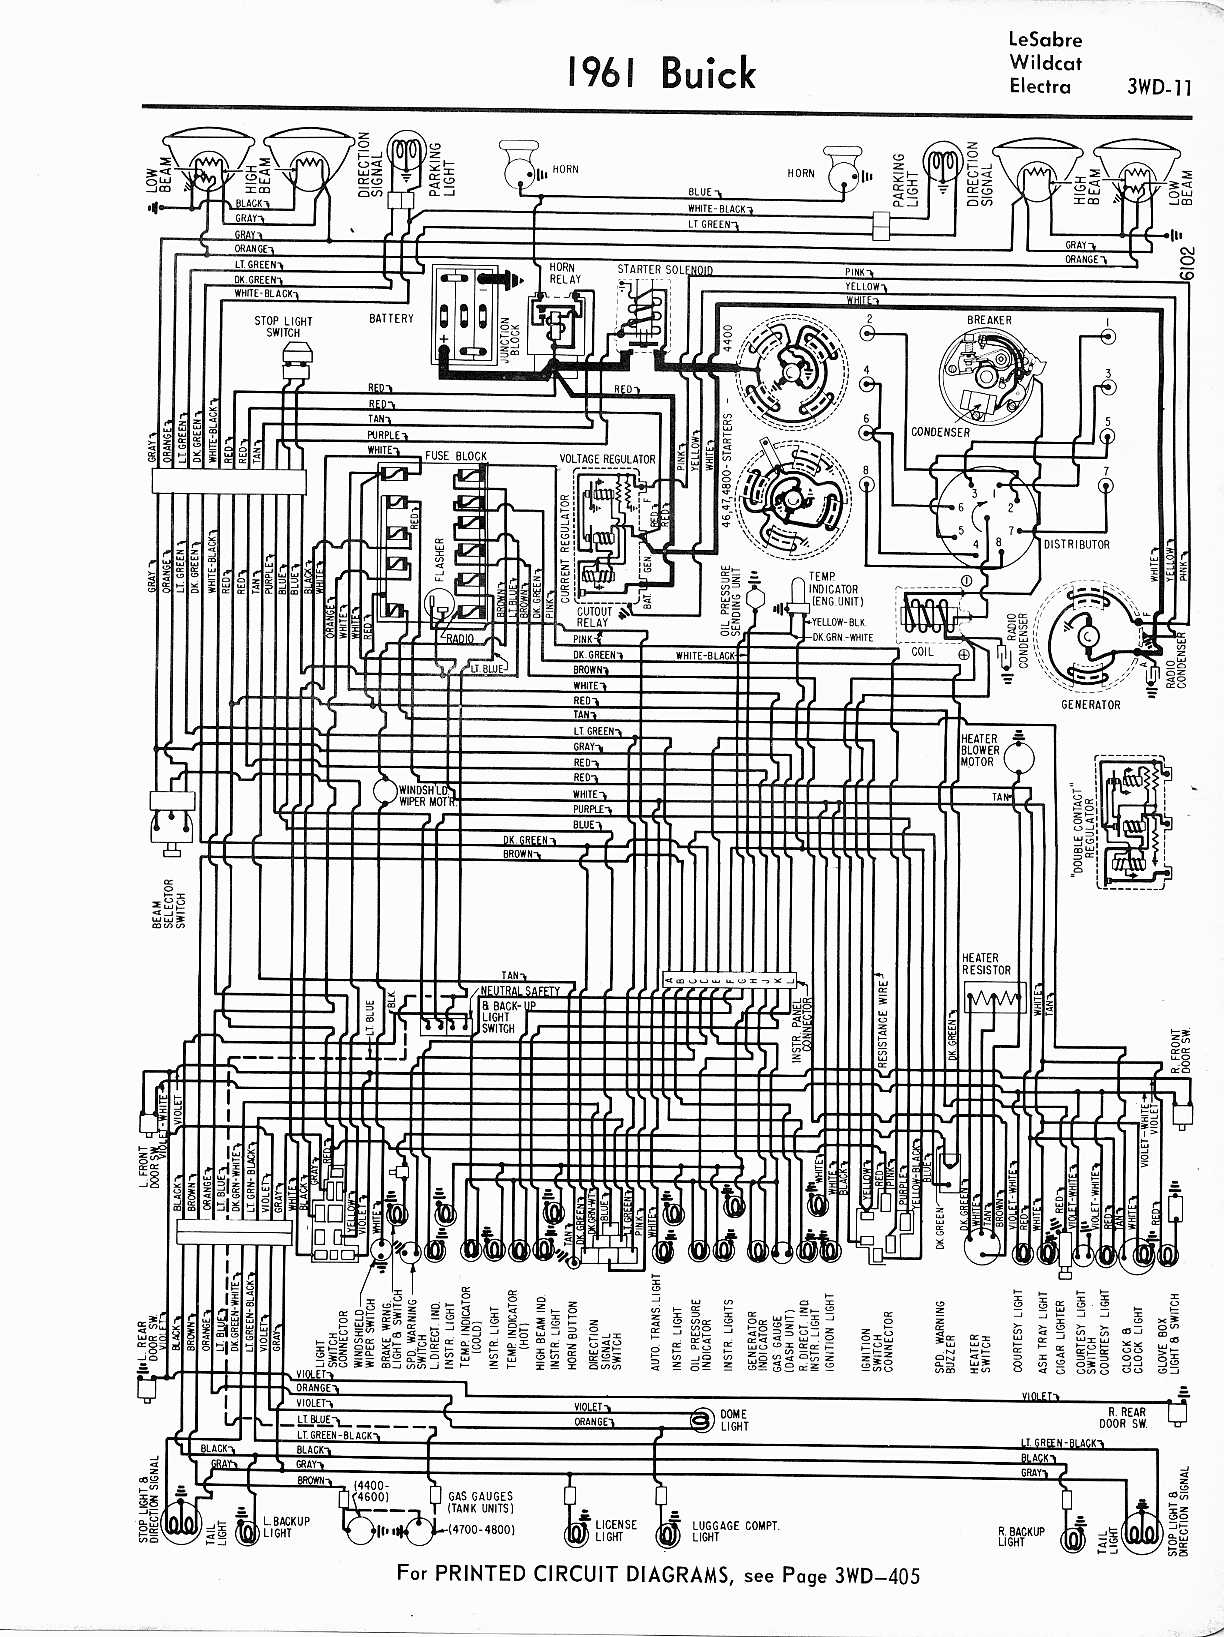 [DIAGRAM_3NM]  Buick Wiring Diagrams: 1957-1965 | In A 2001 Buick Century Wiper Wiring Diagram For A System |  | The Old Car Manual Project